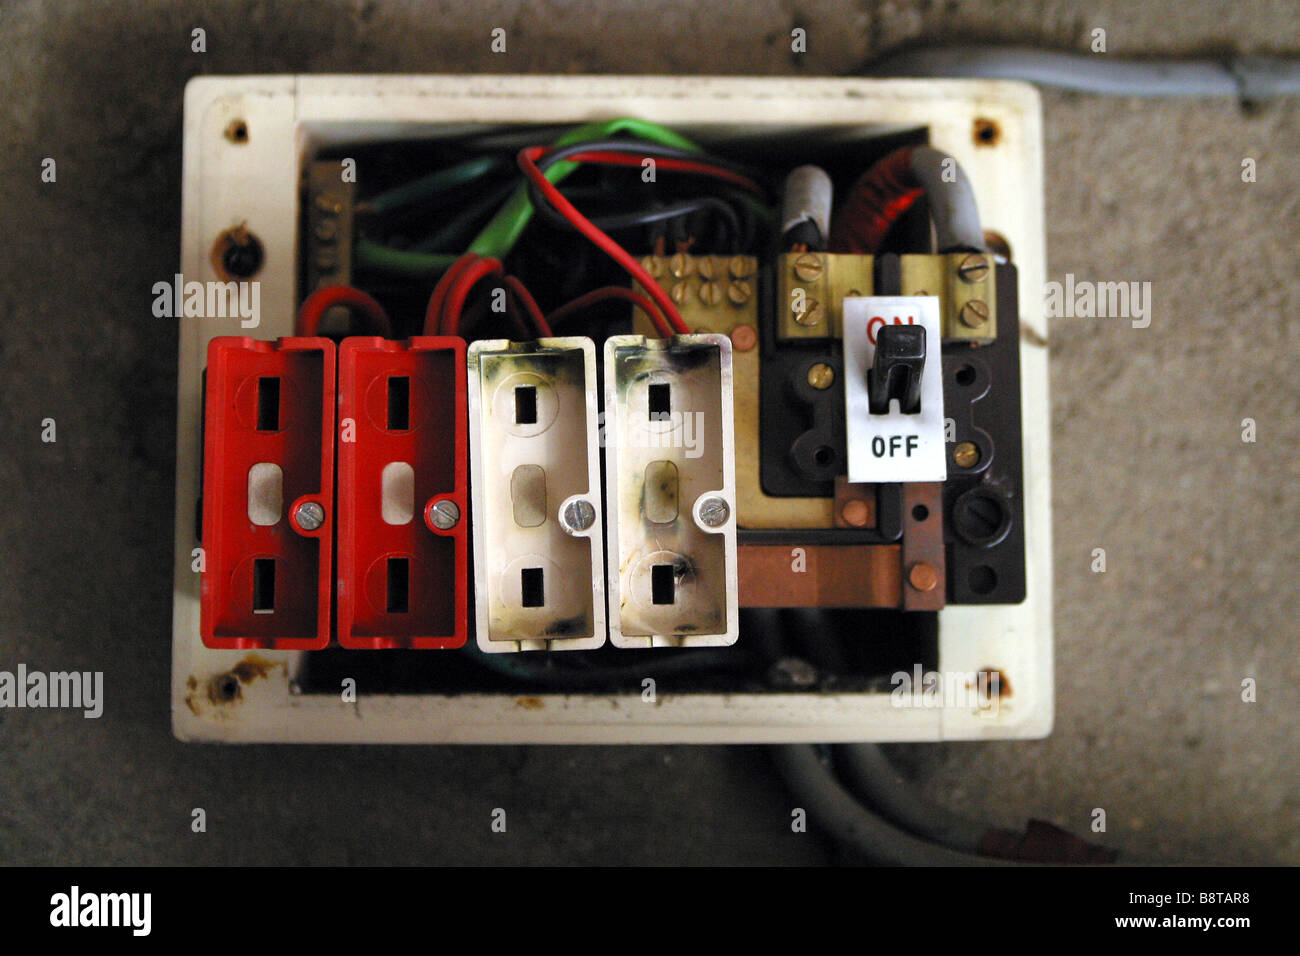 hight resolution of blown fuse in breaker box circuit diagram schema old house fuse box burnt fuse box home